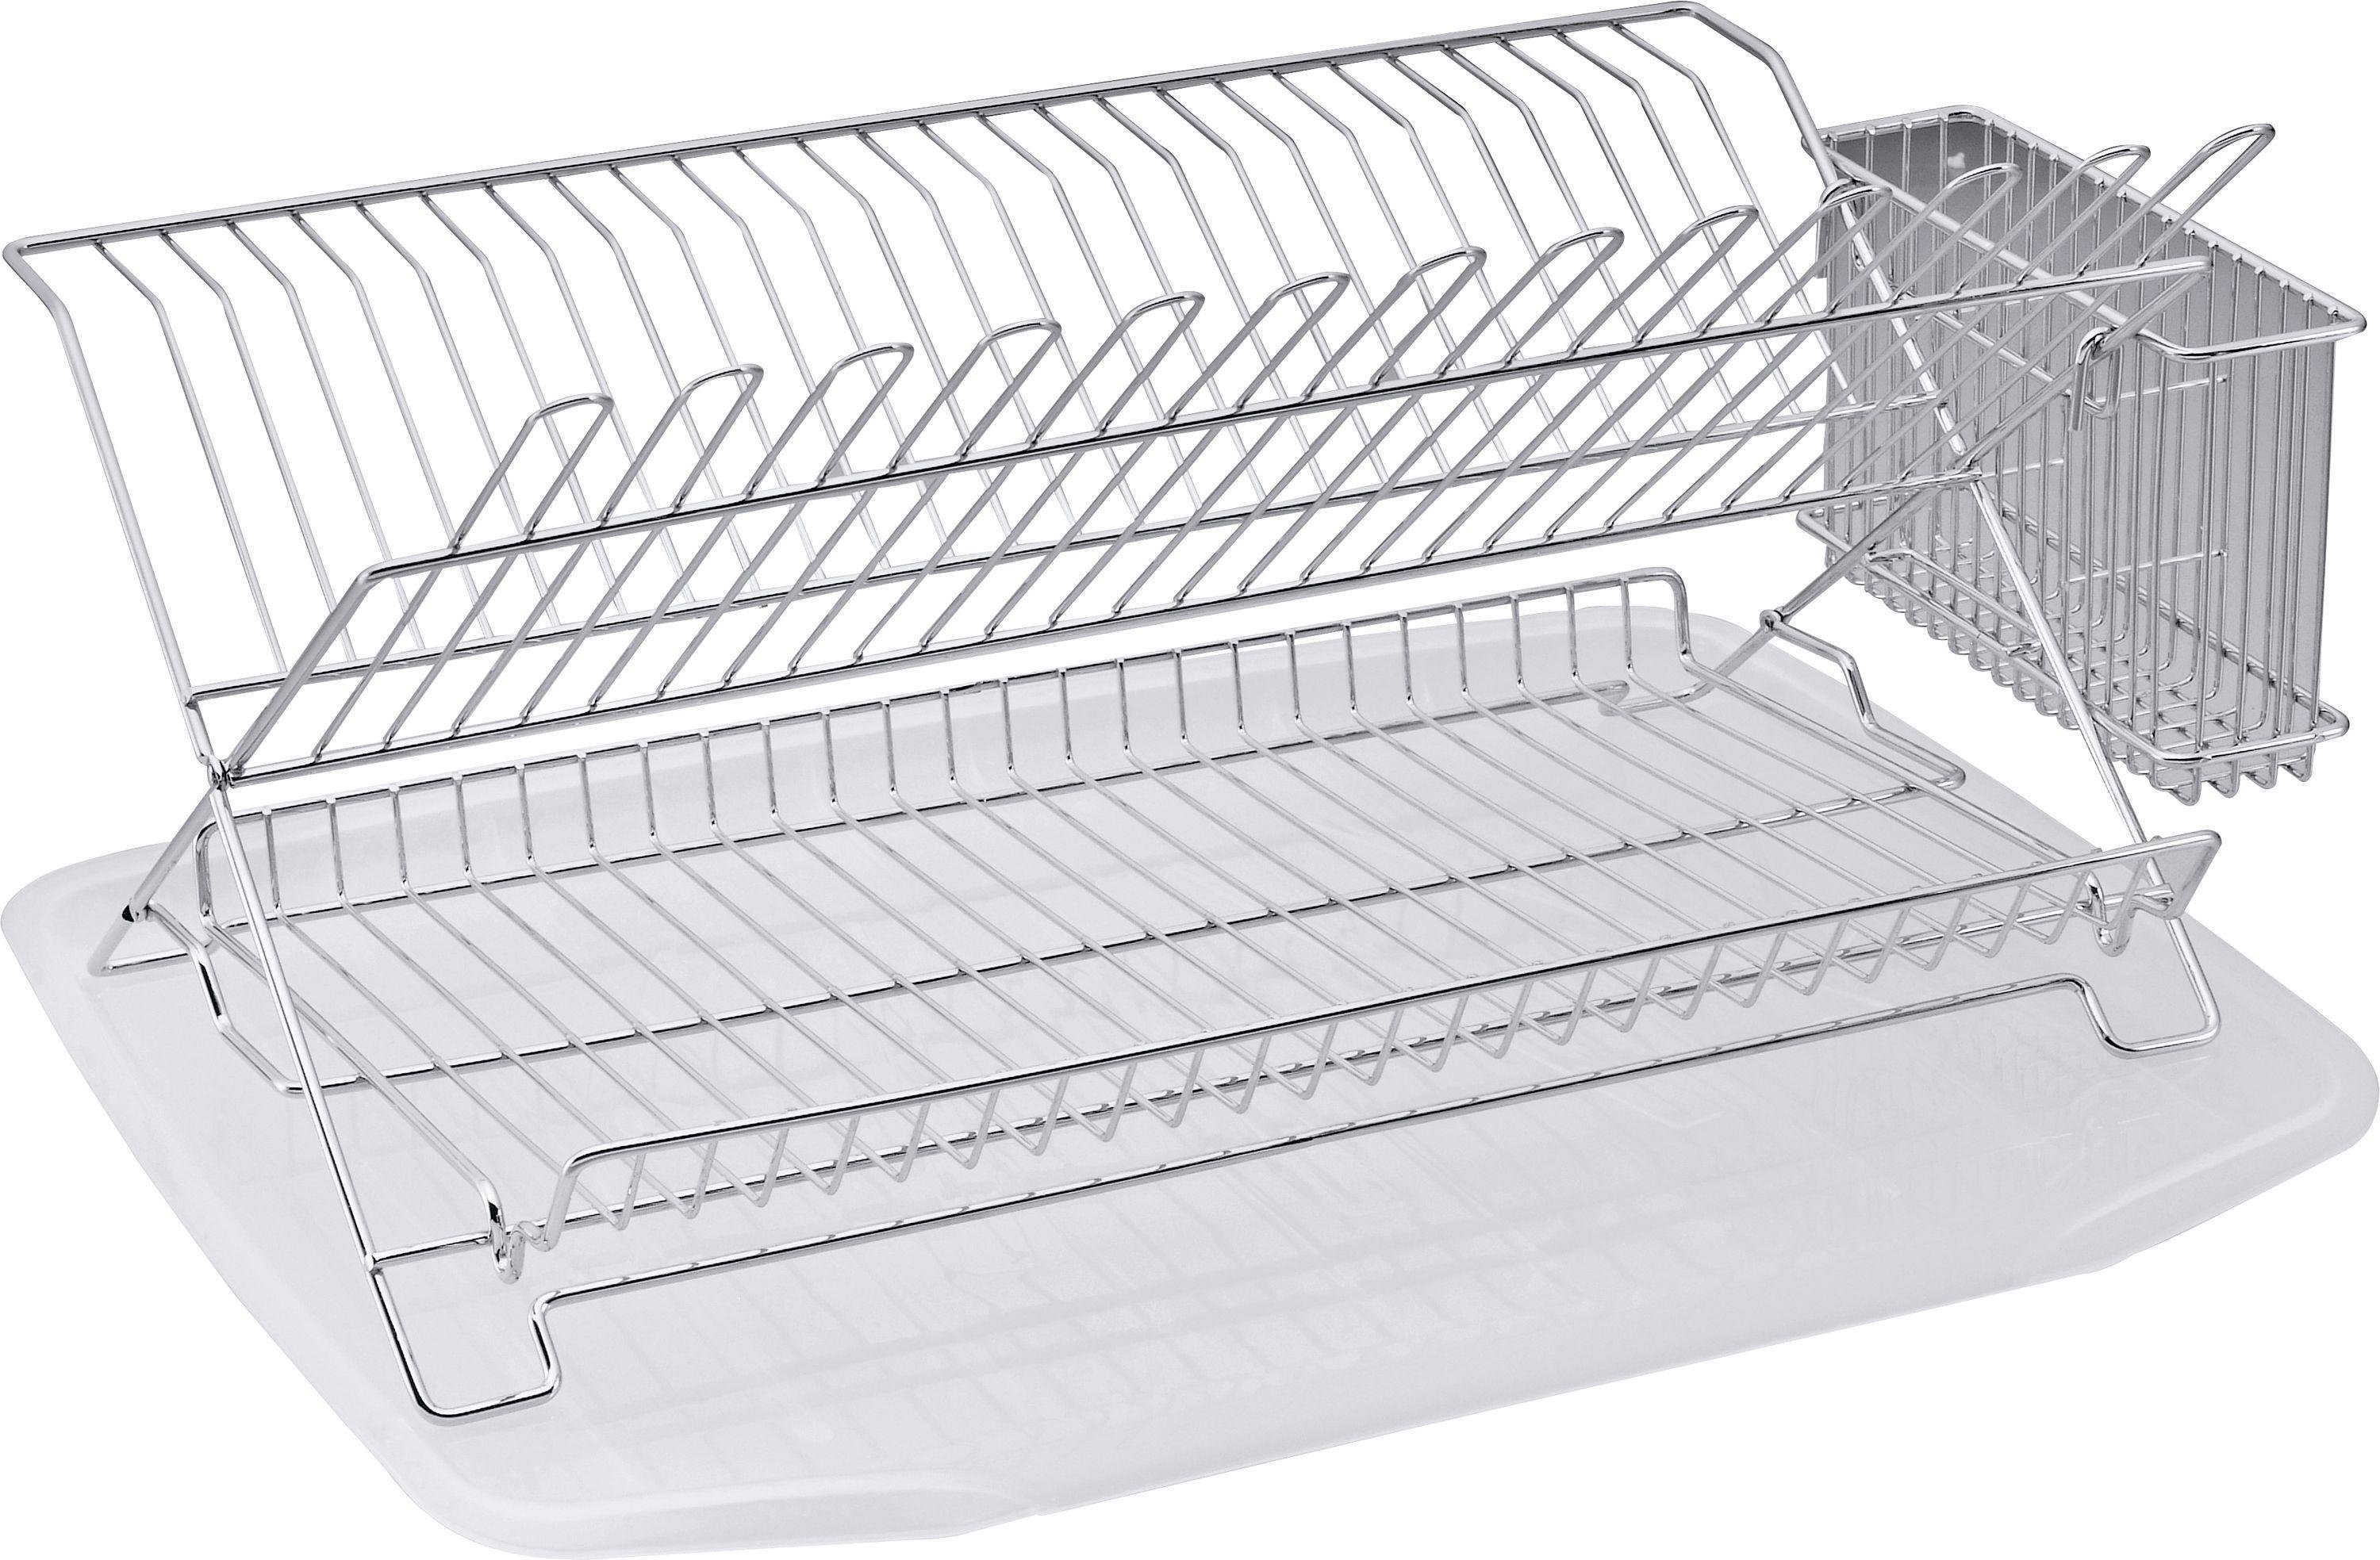 sale on argos home dish rack with drainer chrome. Black Bedroom Furniture Sets. Home Design Ideas